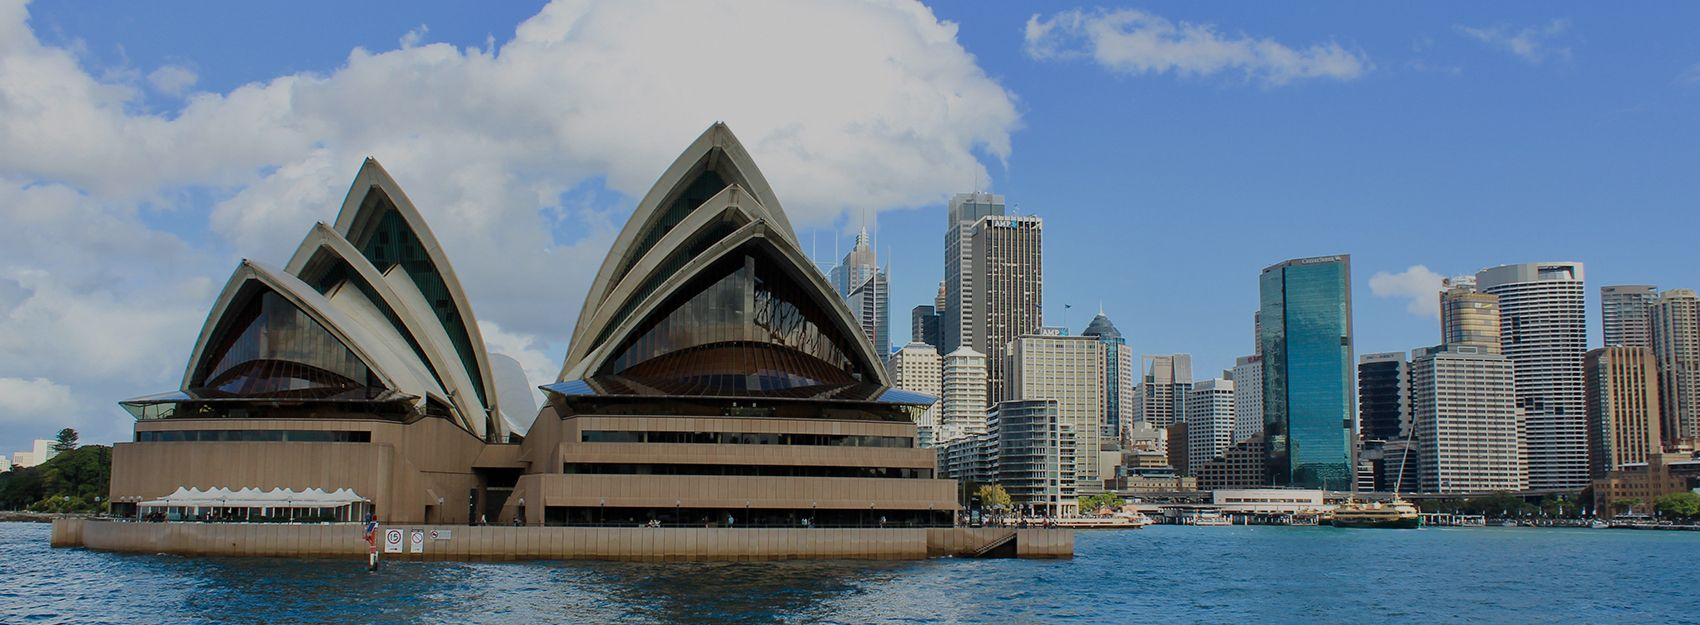 sydney opera house and harbor in sydney, australia